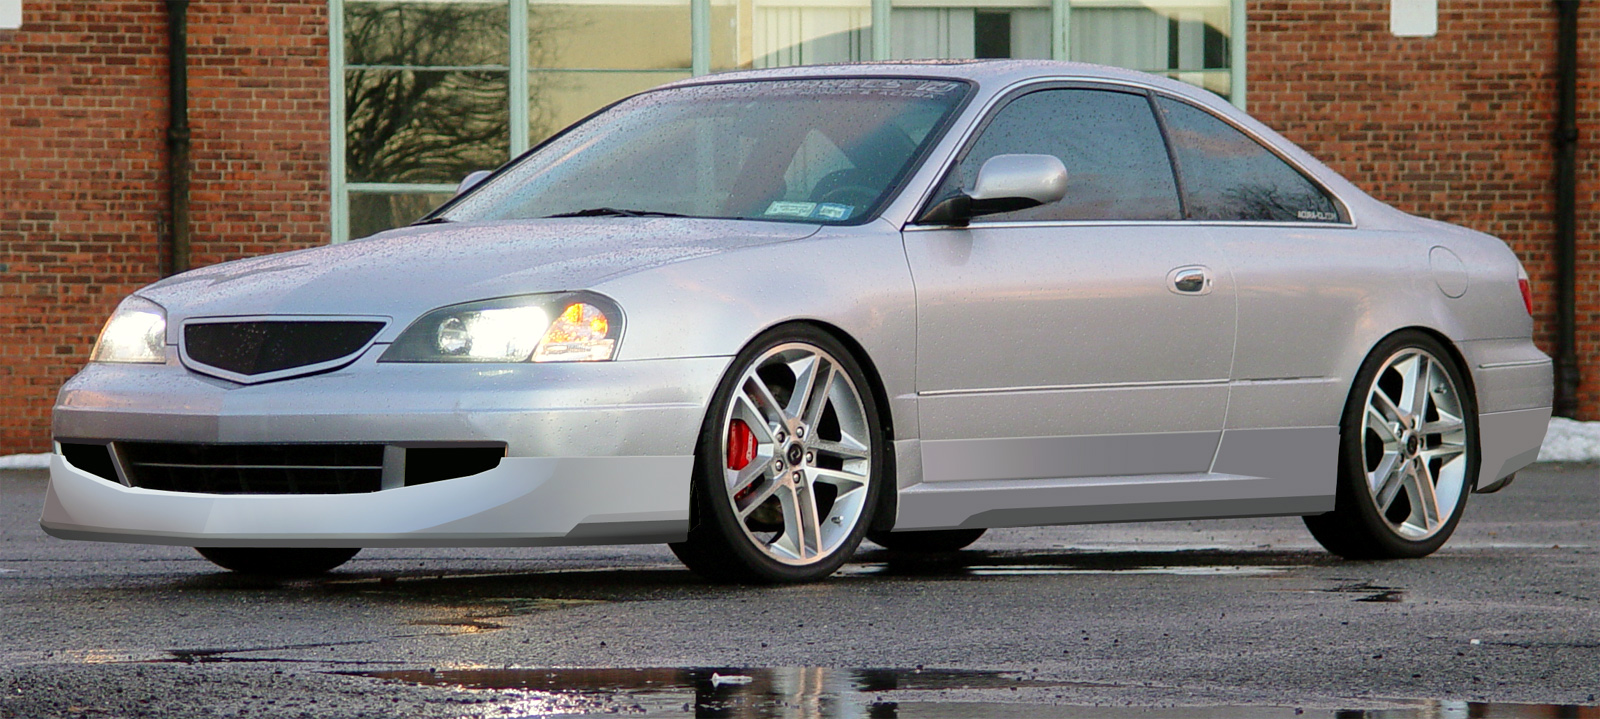 hight resolution of ronjon sport design 2001 03 acura cl urethane lip kit gb acurazine acura enthusiast community